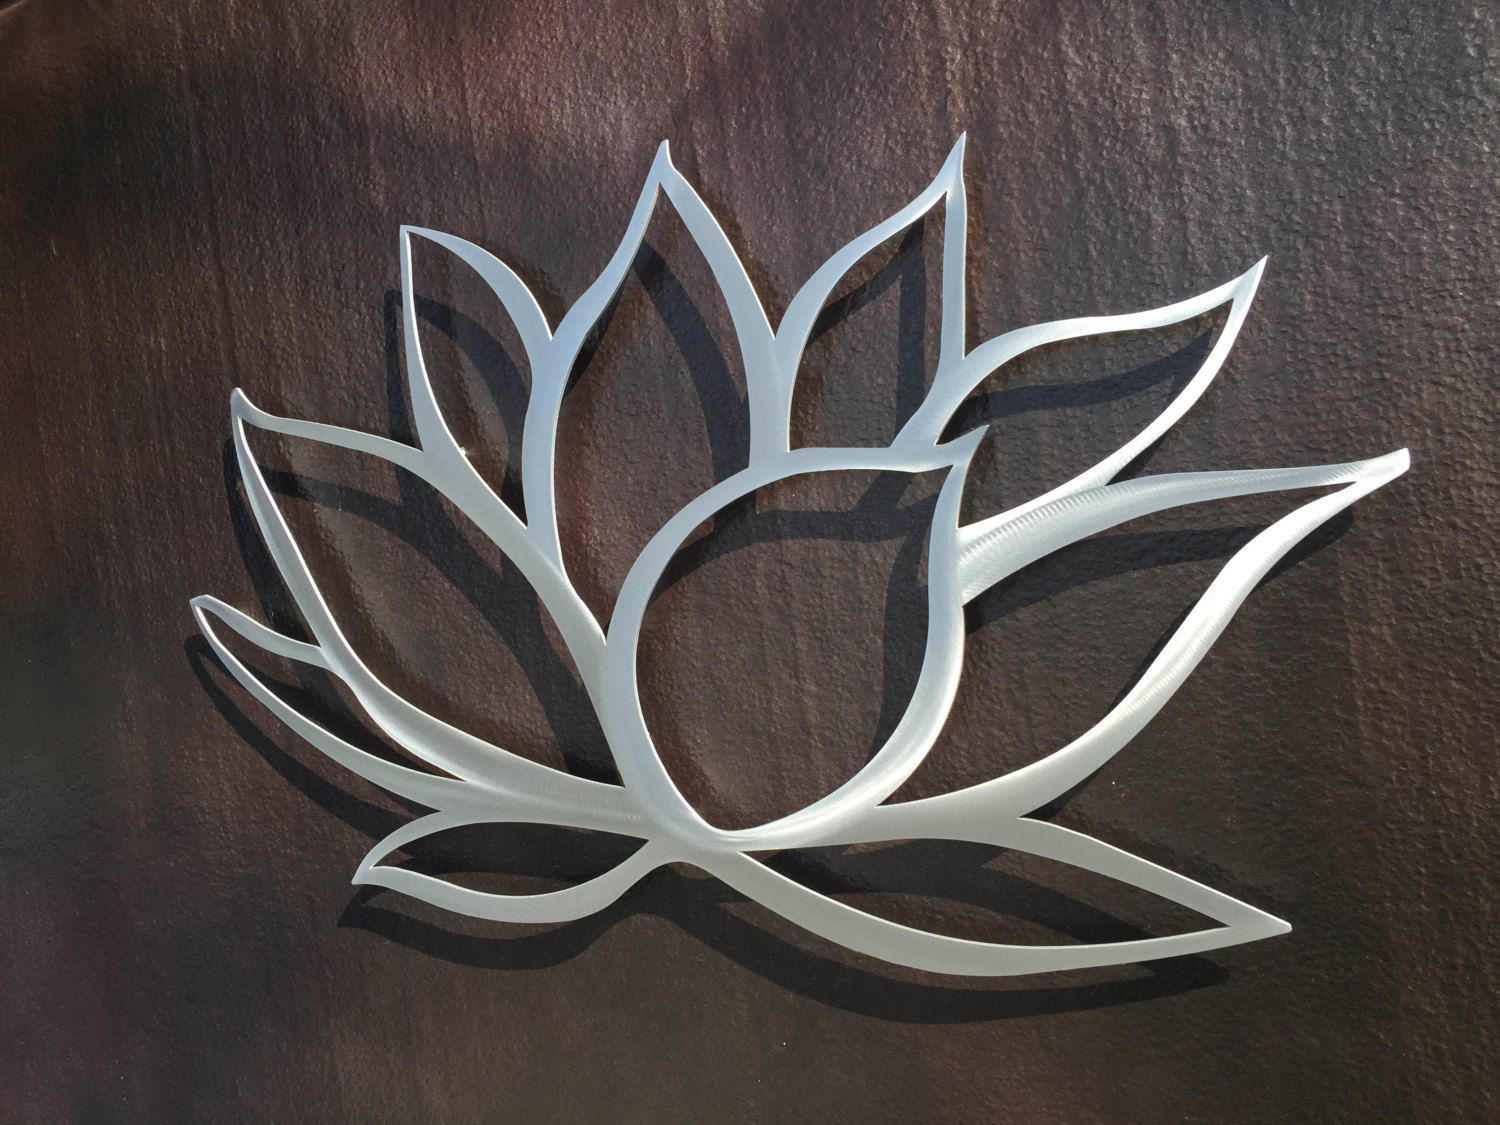 Huge Metal Wall Decor Lotus Flower Metal Wall Art  Lotus Metal Art  Home Decor In